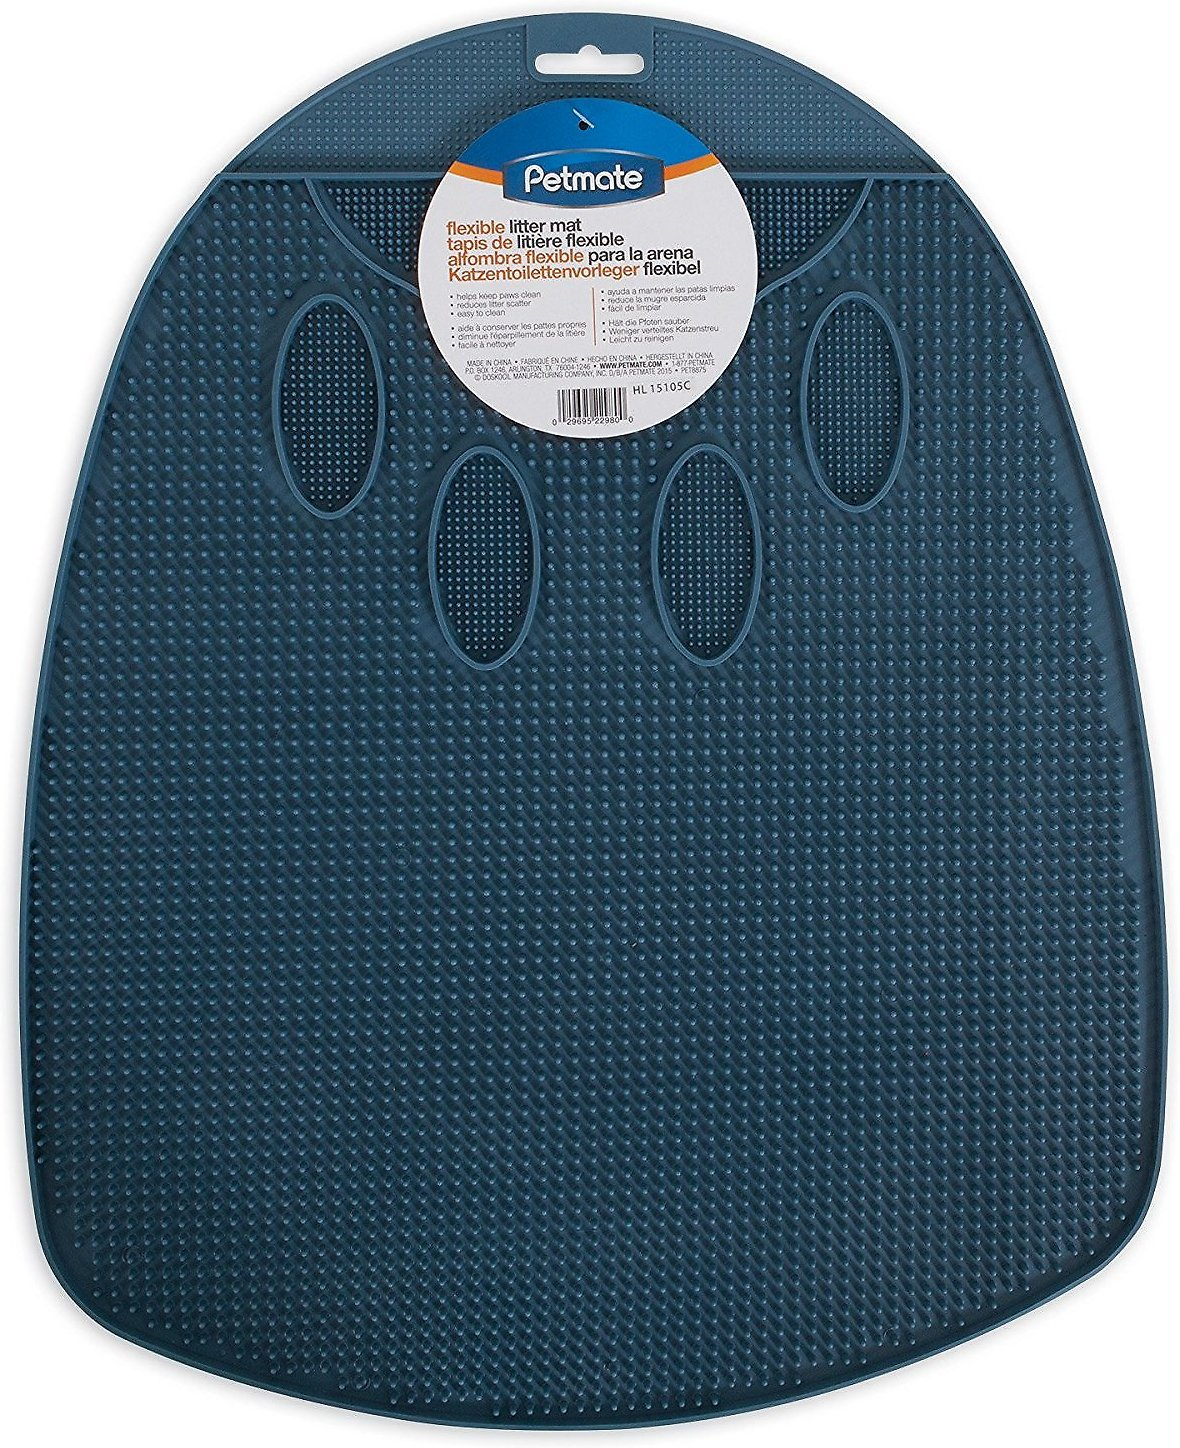 Petmate Flexible Litter Mat, Color Varies